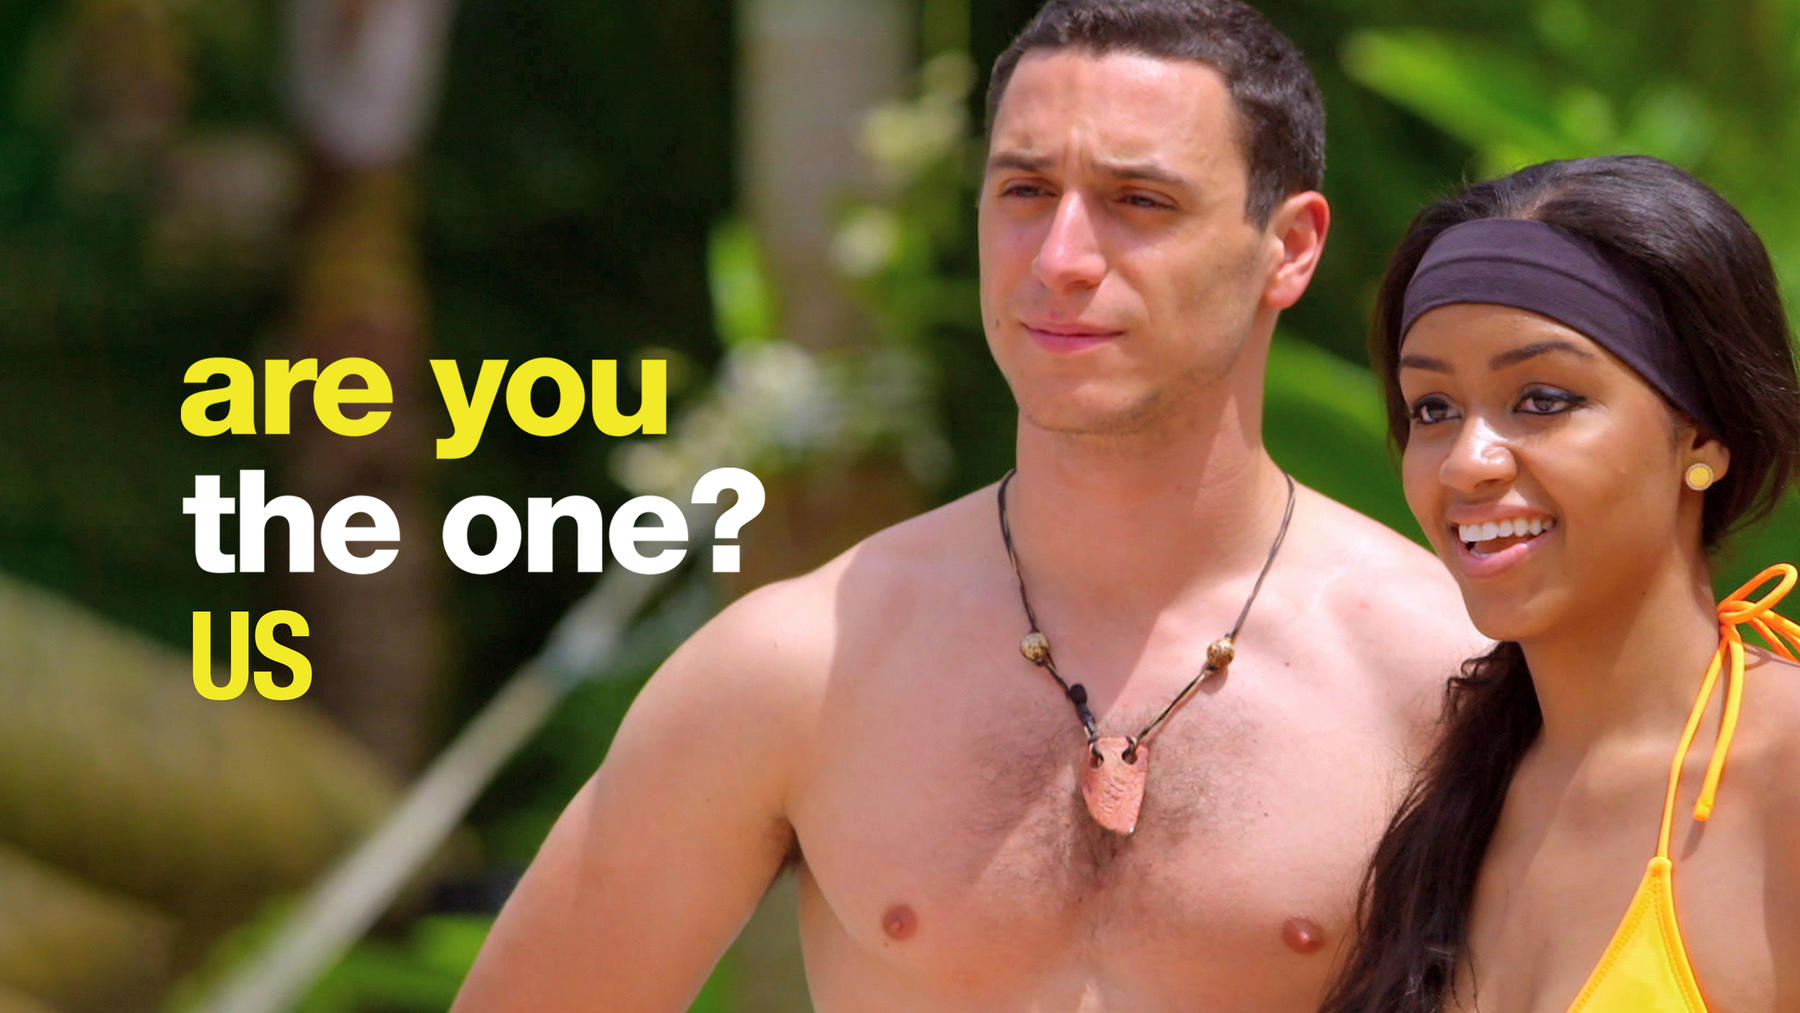 Are You The One? US